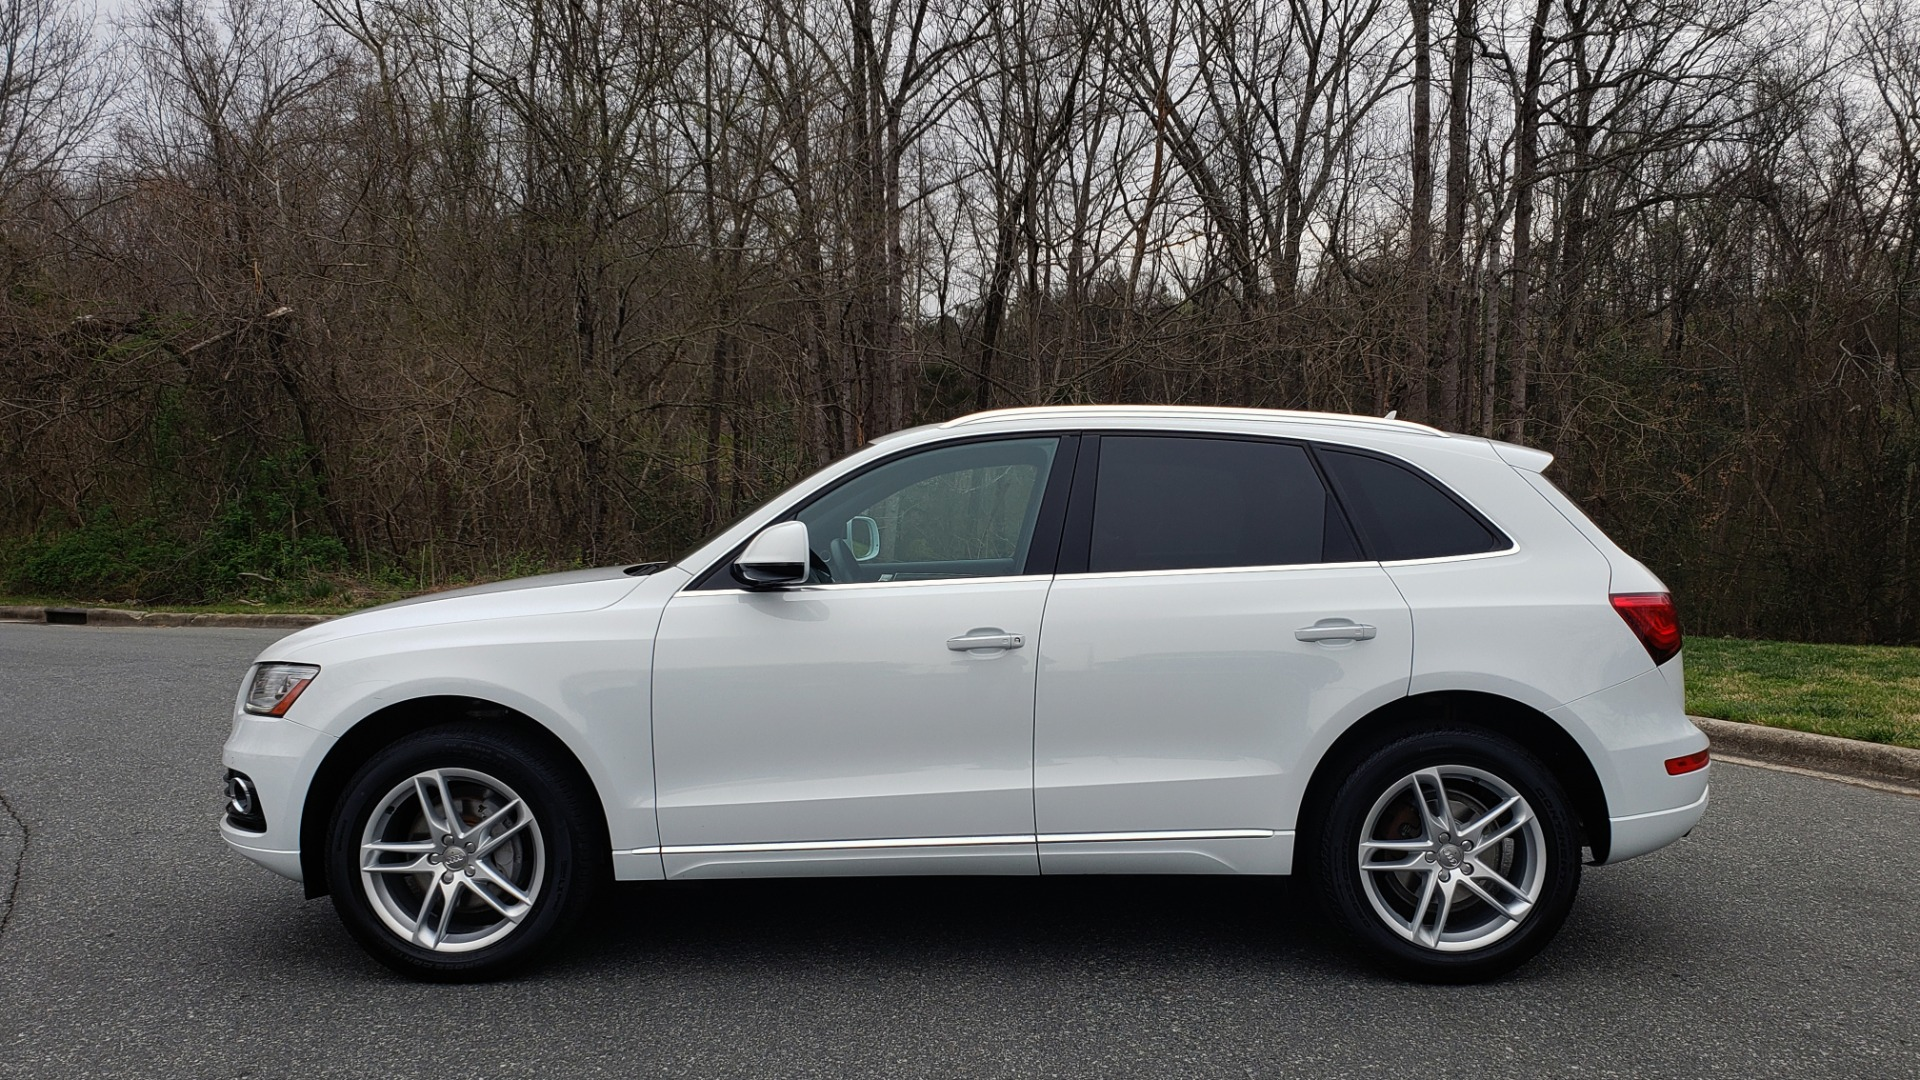 Used 2017 Audi Q5 PREMIUM PLUS / TECH / NAV / PANO-ROOF / B&O SND / REARVIEW for sale Sold at Formula Imports in Charlotte NC 28227 2